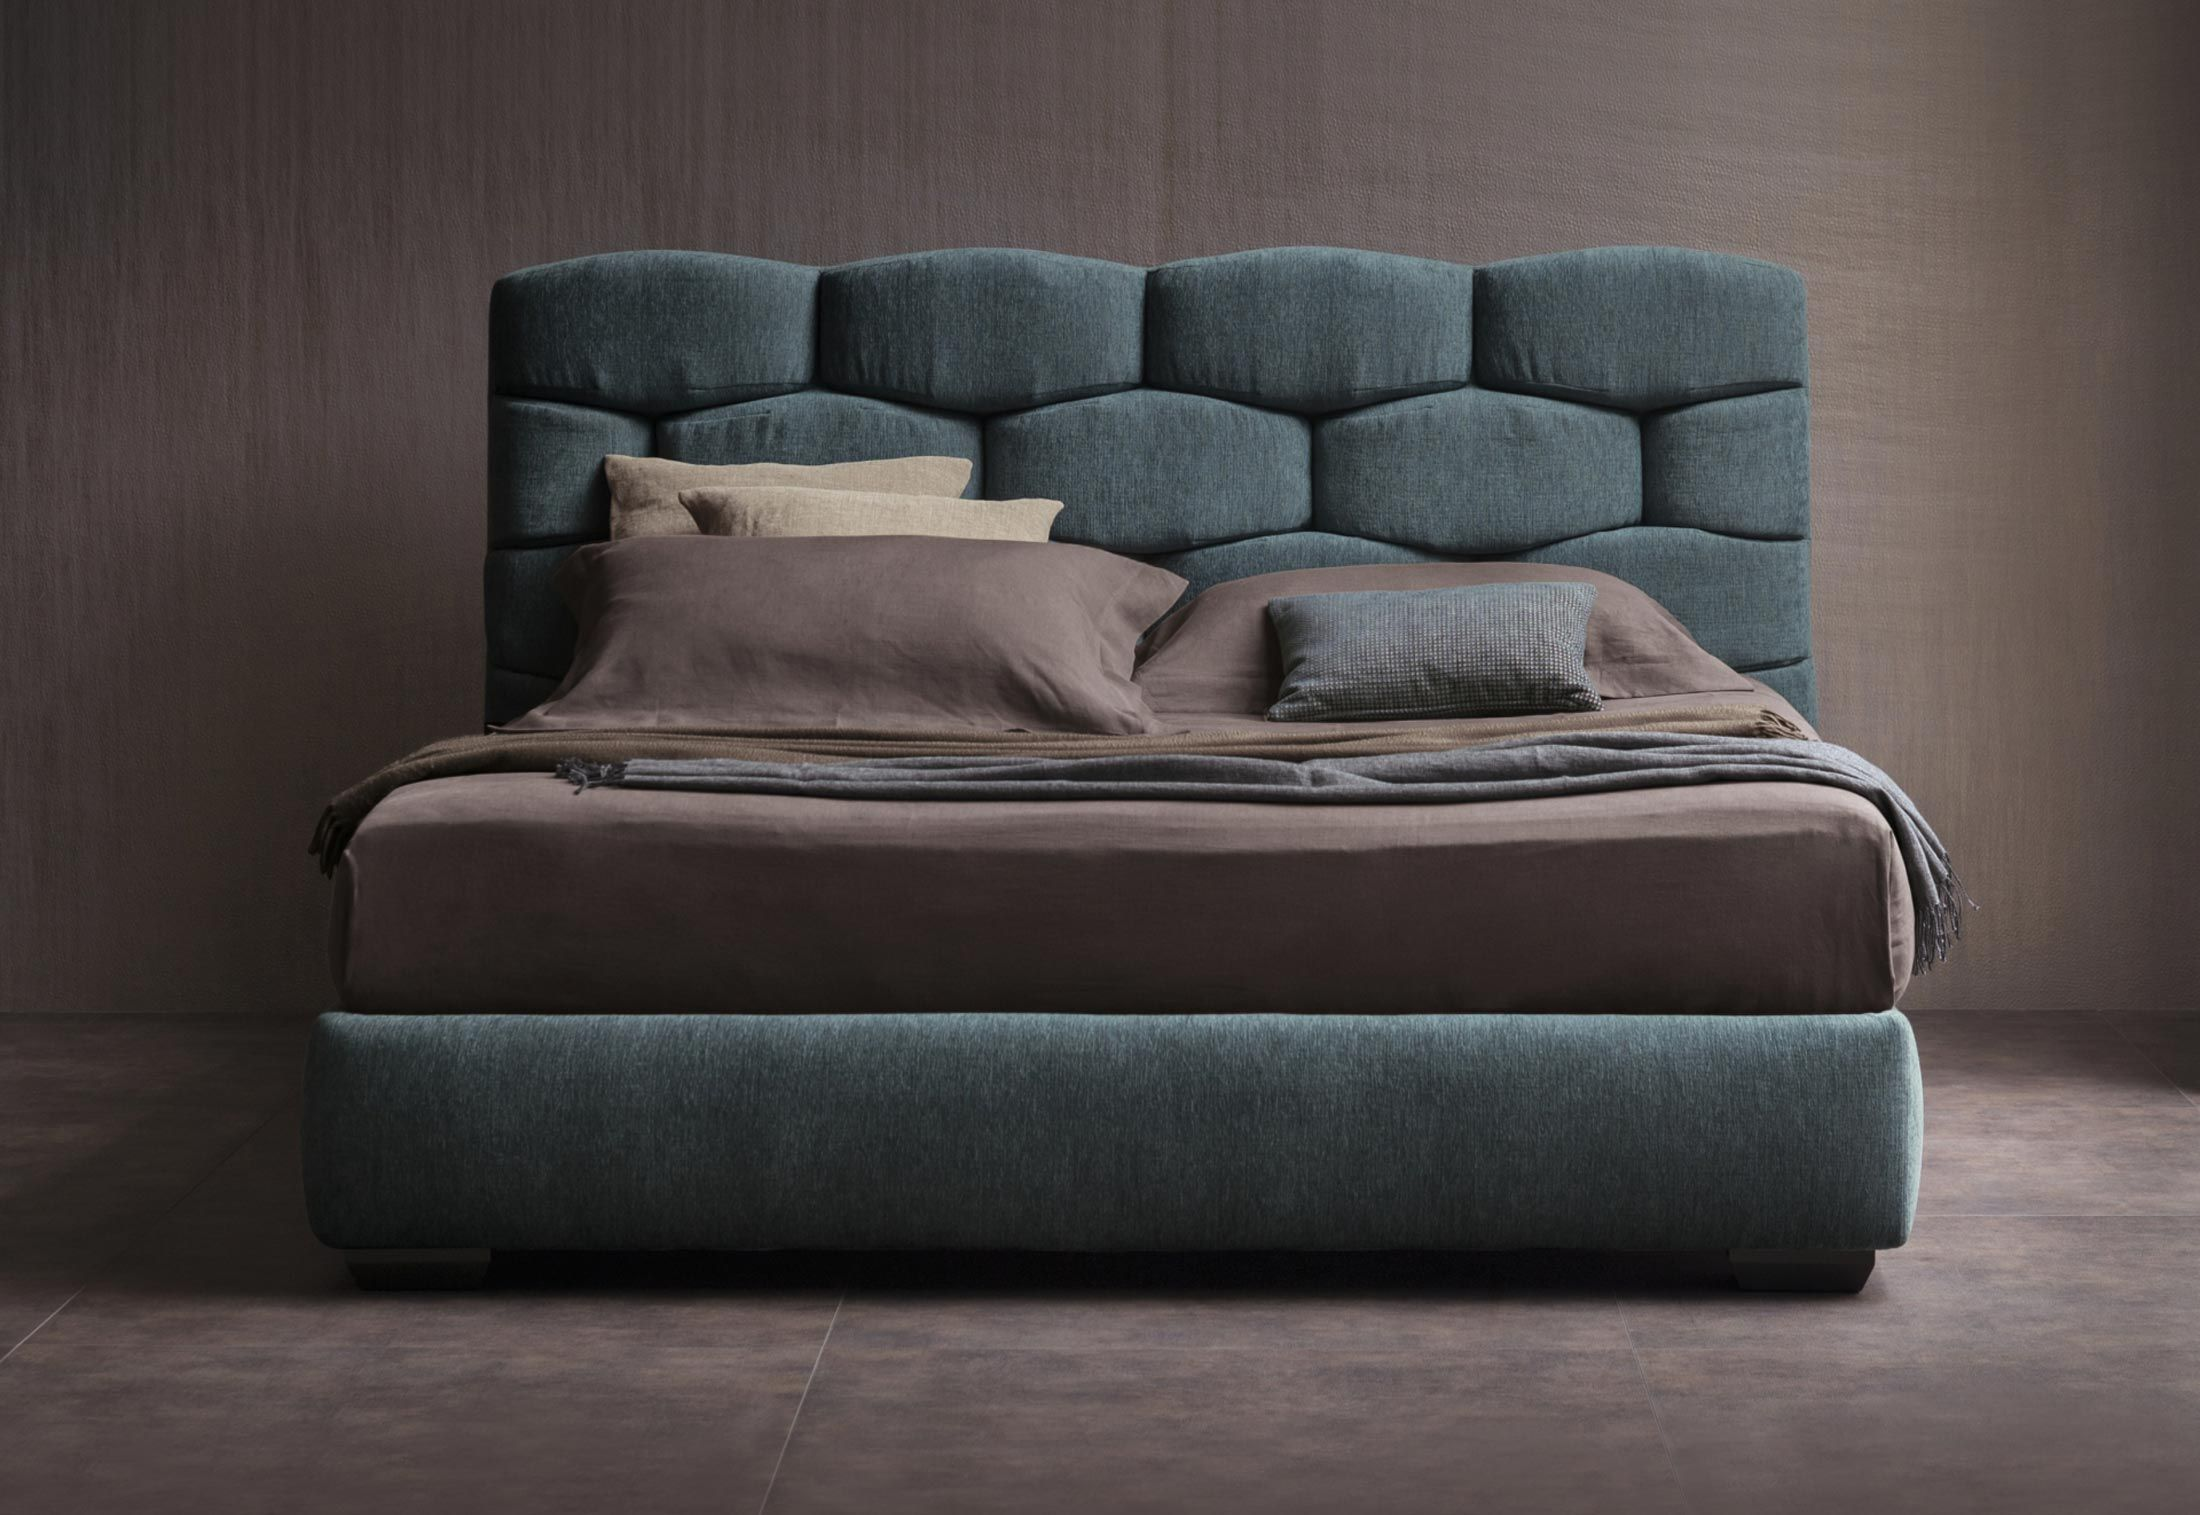 Majal Bed by Carlo Colombo for FLOU | Camas hermosas, Camas king y Camas